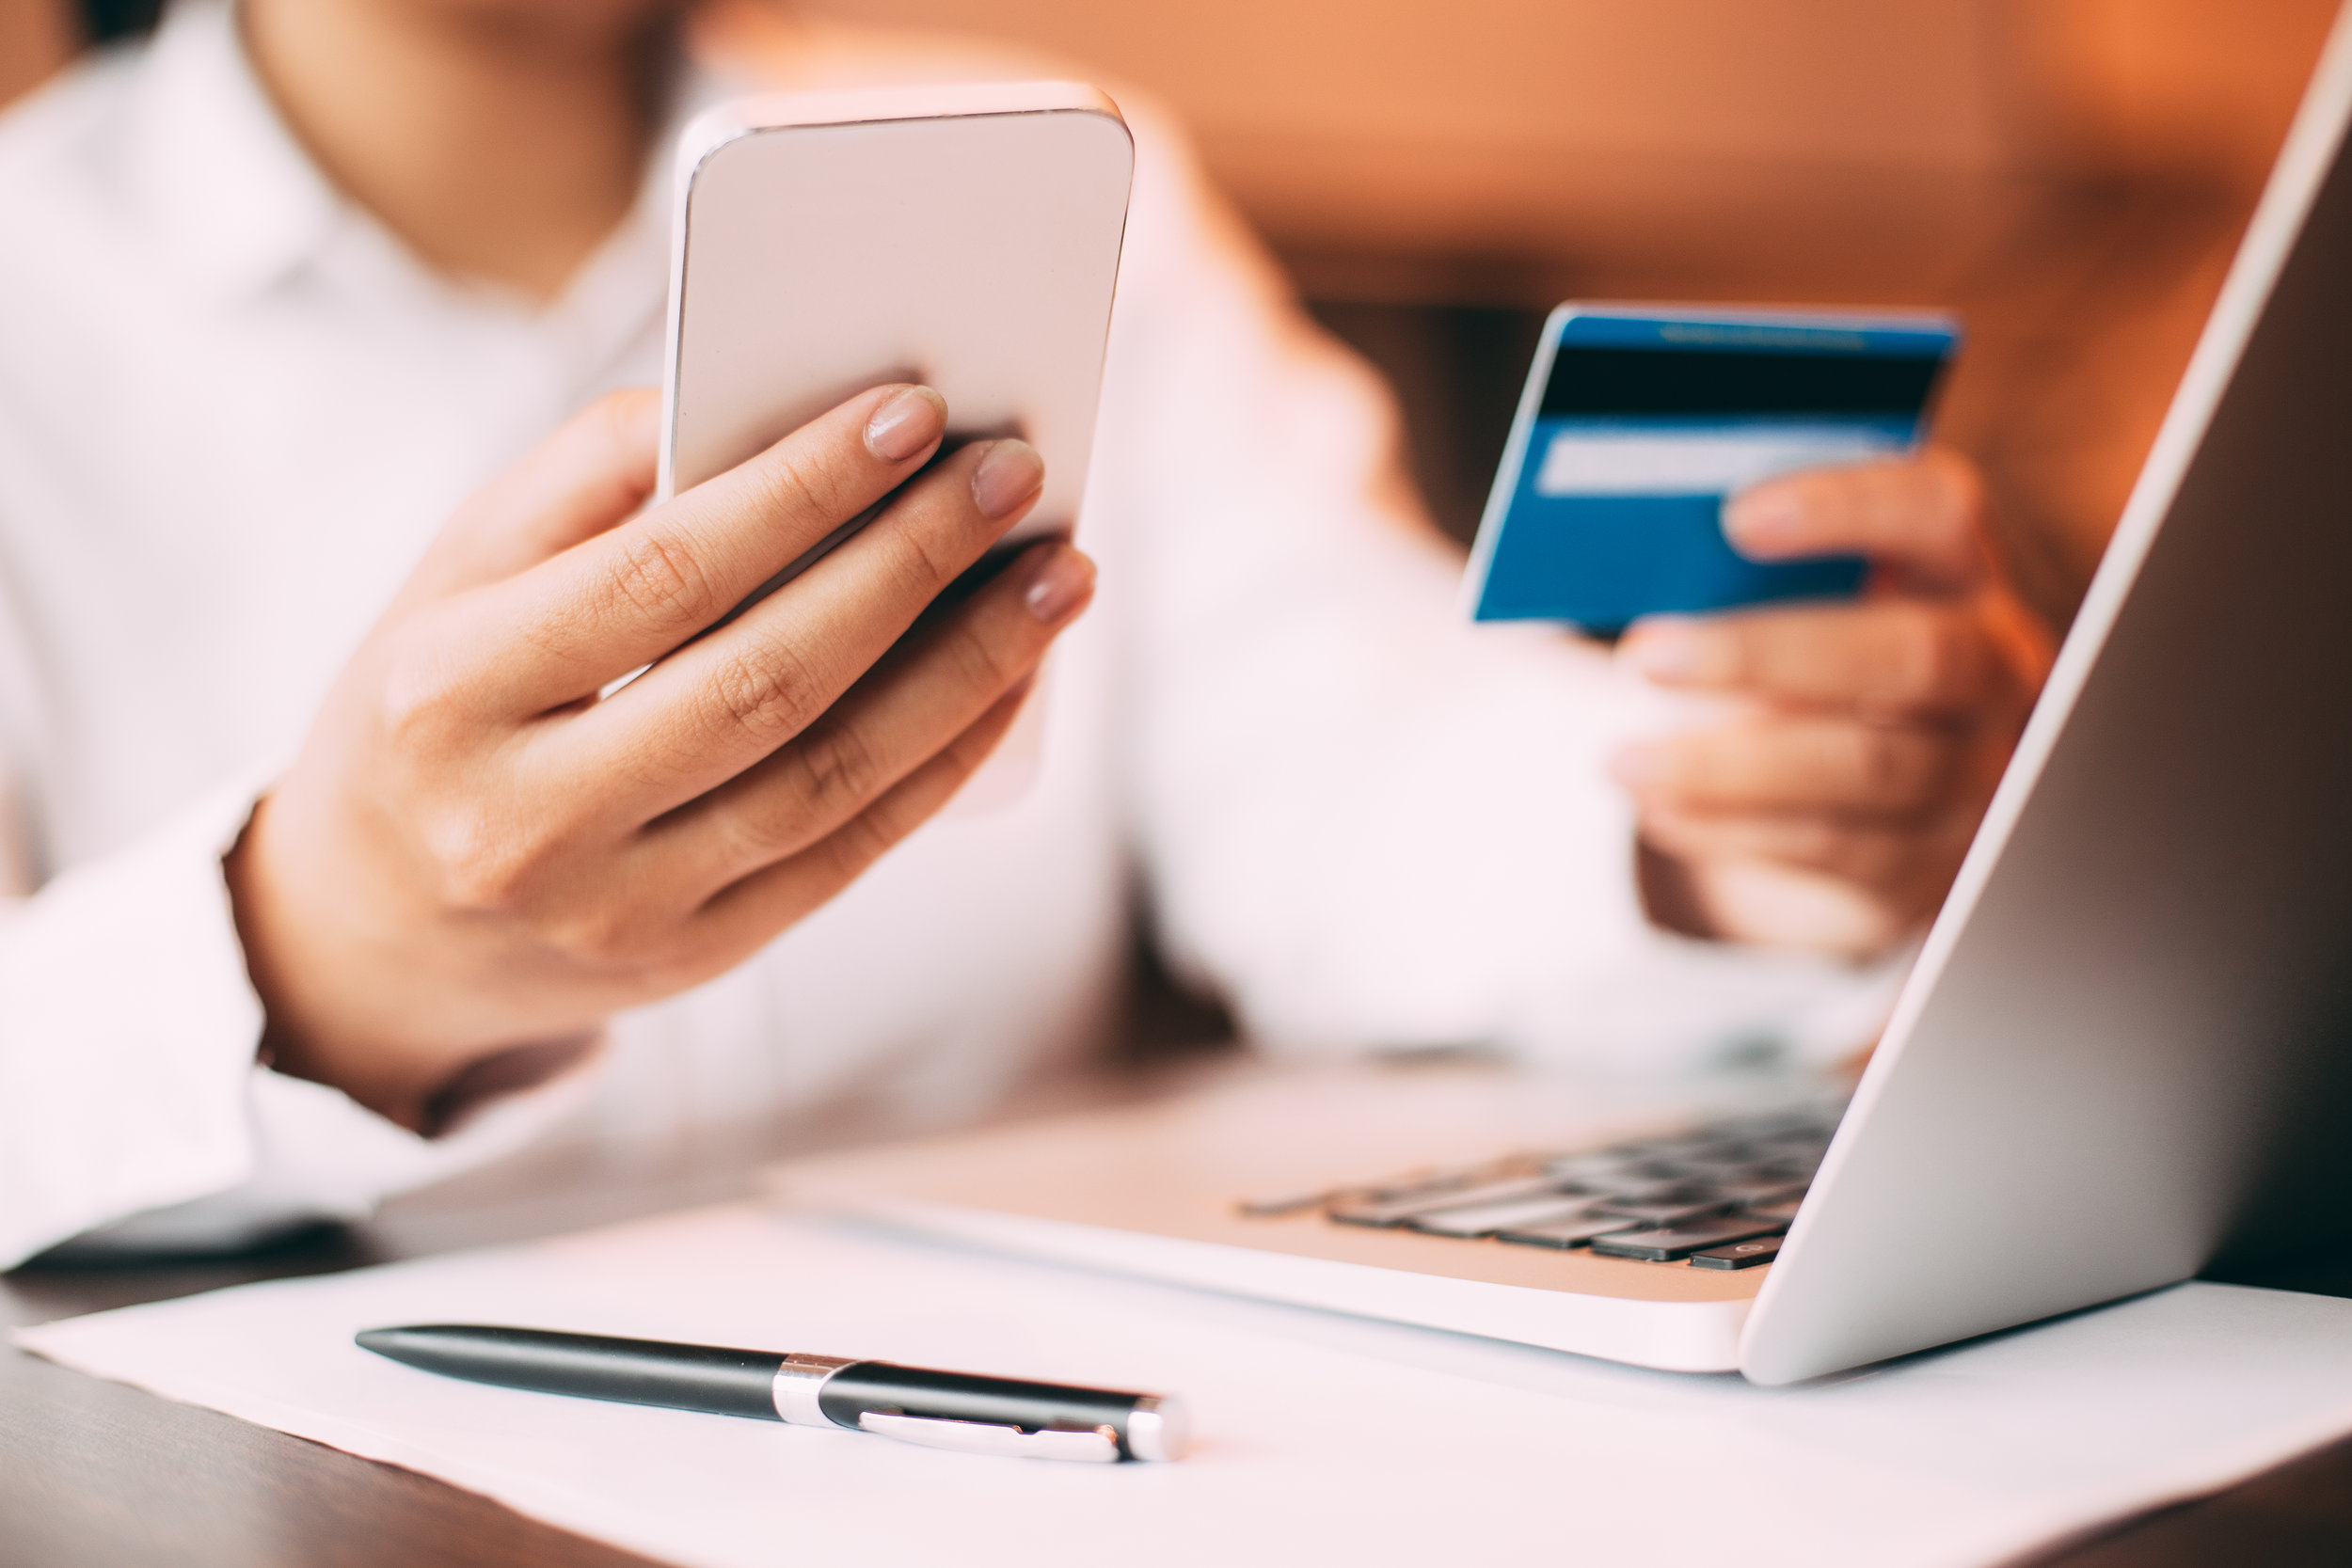 - CheckFreePay is the largest processor of walk-in bill payments in the United States. For more than 20 years, we've been the leader in the industry, providing reliable bill payment services through our nationwide network of agents.